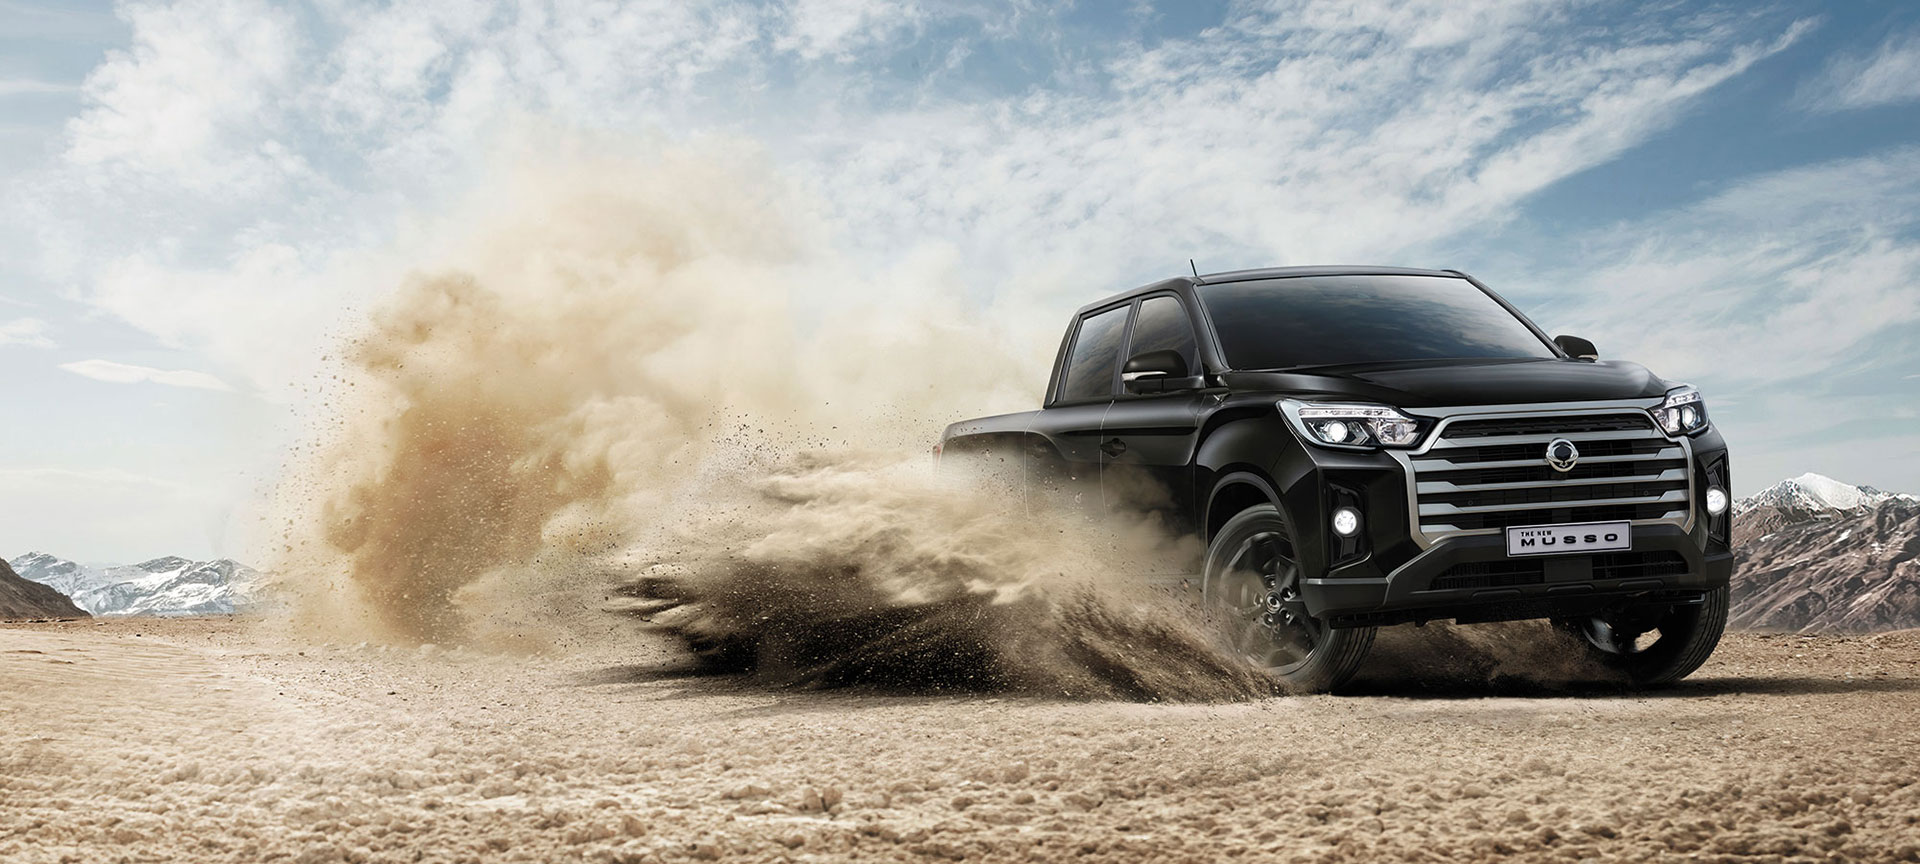 SsangYong - Musso - Drifting In The Dirt